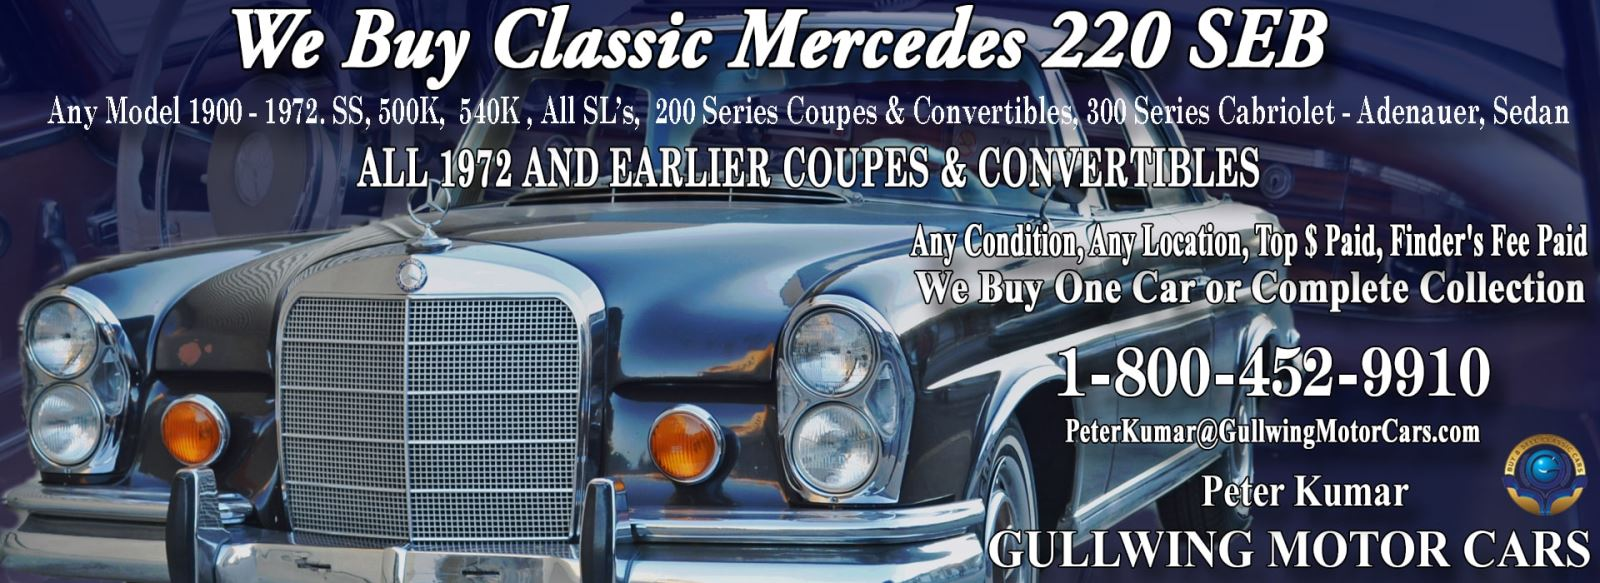 Classic Mercedes 220SEB for sale, we buy vintage Mercedes 220SEB. Call Peter Kumar. Gullwing Motor